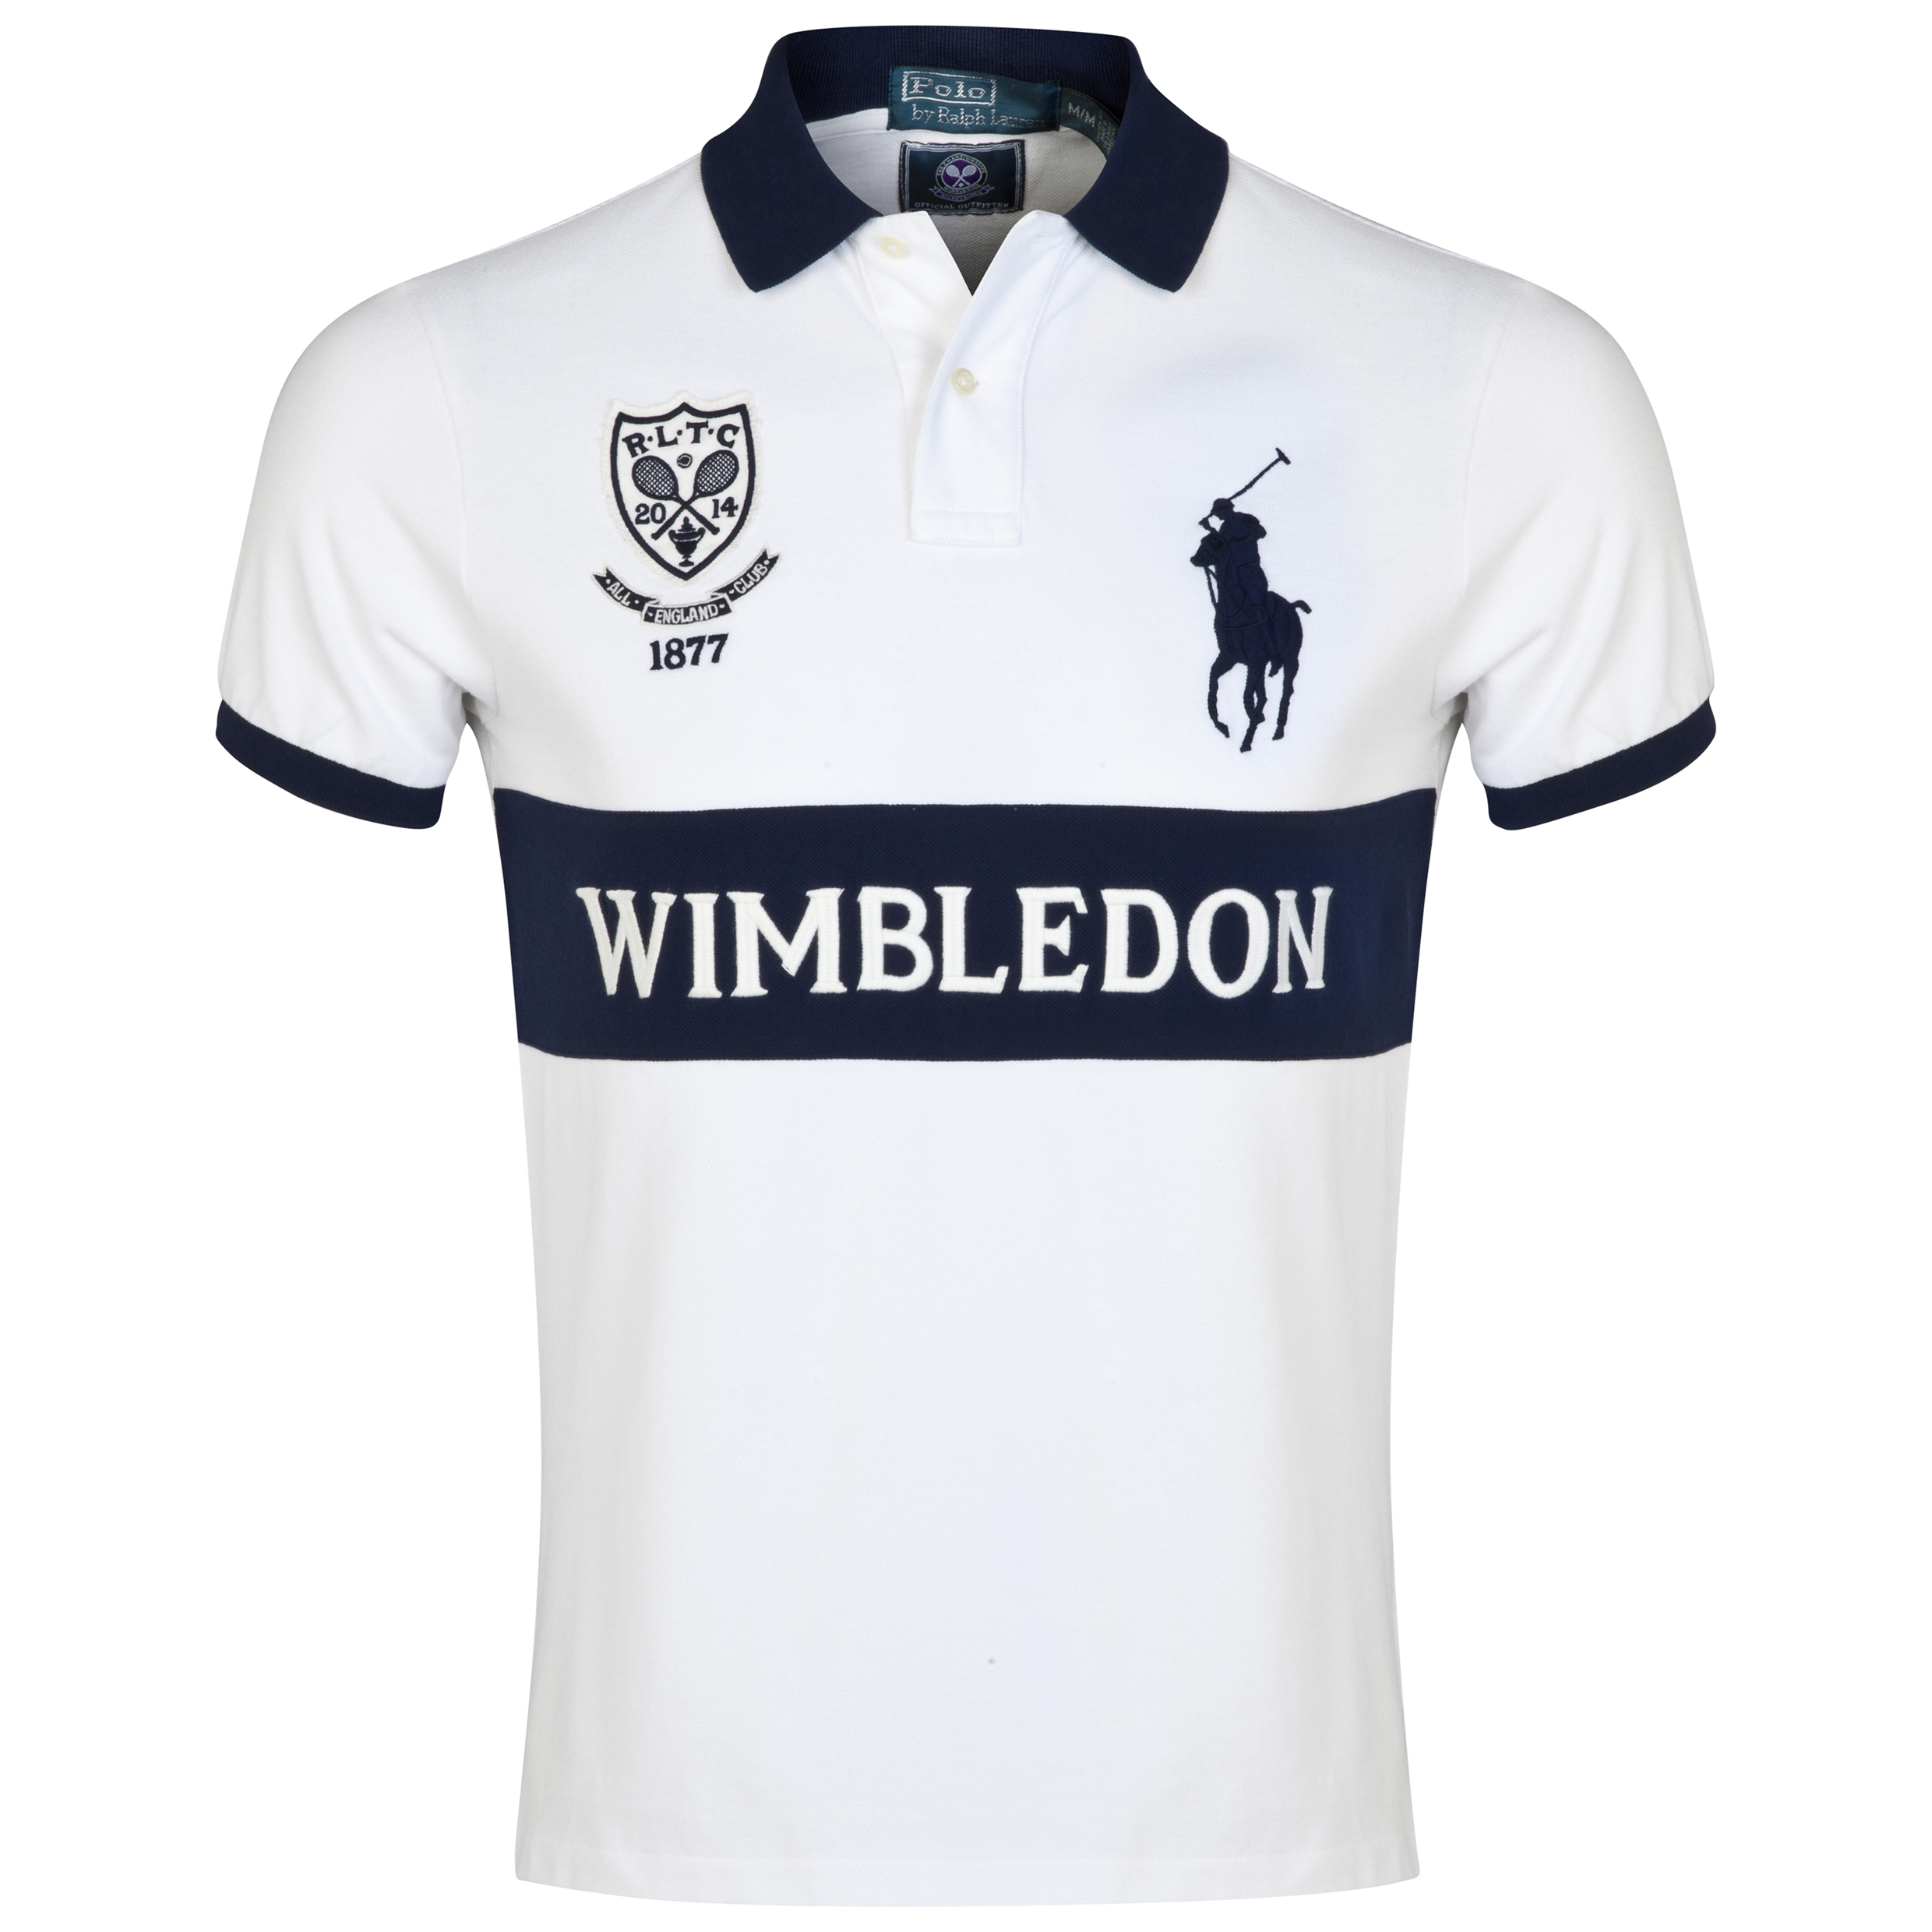 Wimbledon Polo Ralph Lauren Custom Fit Basic Mesh Polo - Classic Oxford White